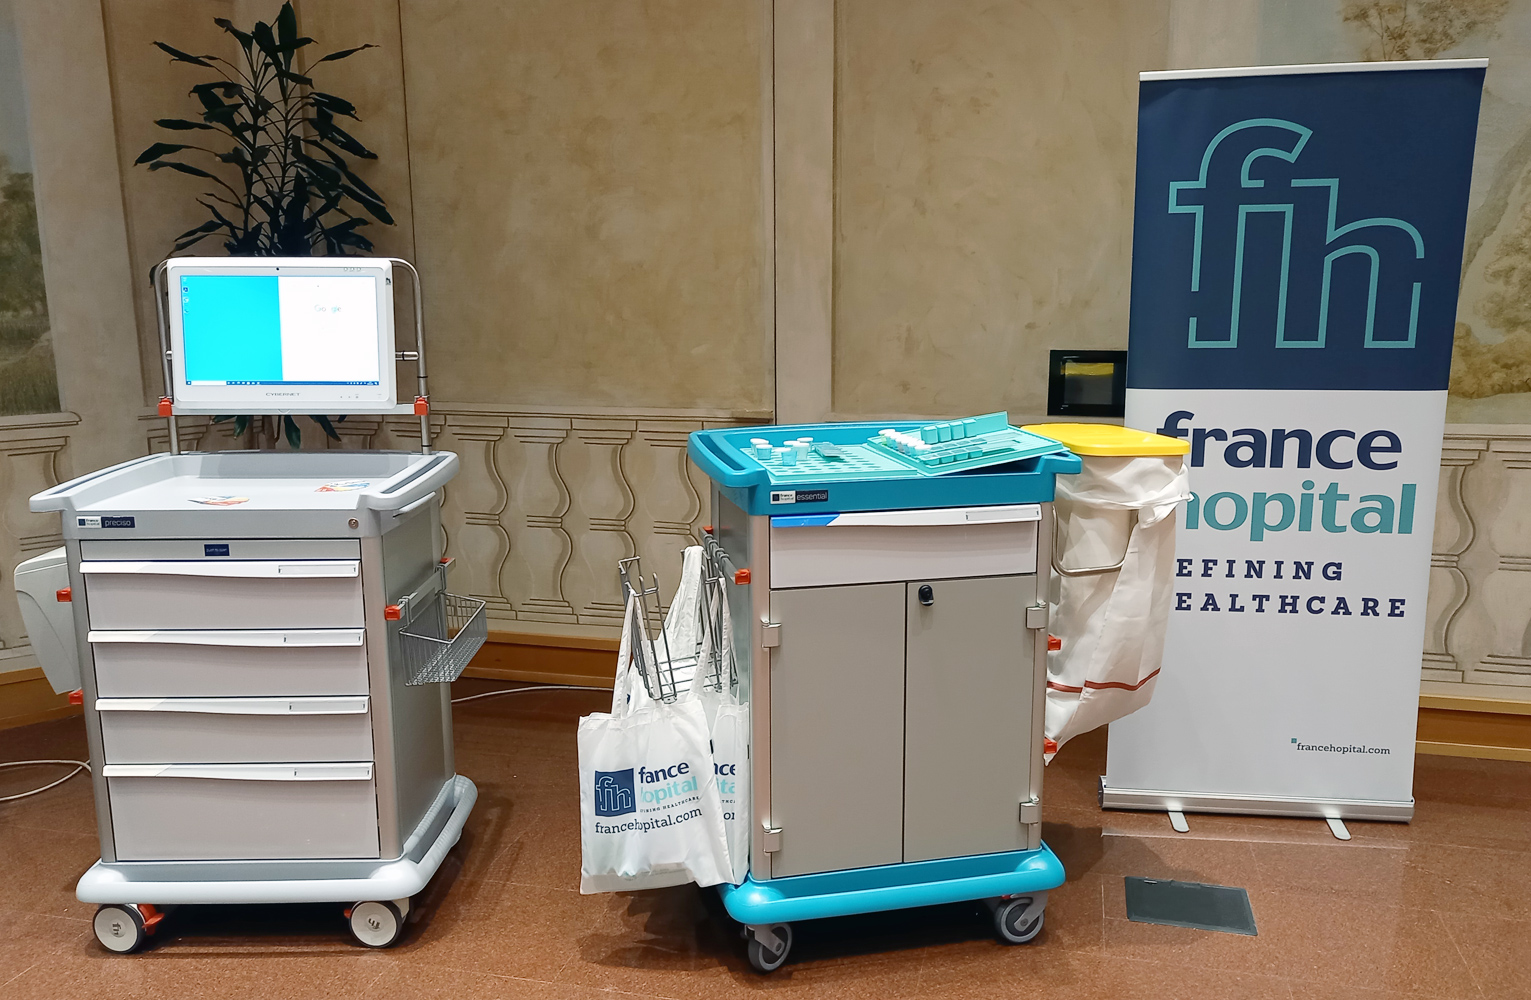 RS100 event in Trento, Italy: FH stand with an ESSENTIAL trolley (for patient hygiene) and an eWork Cart